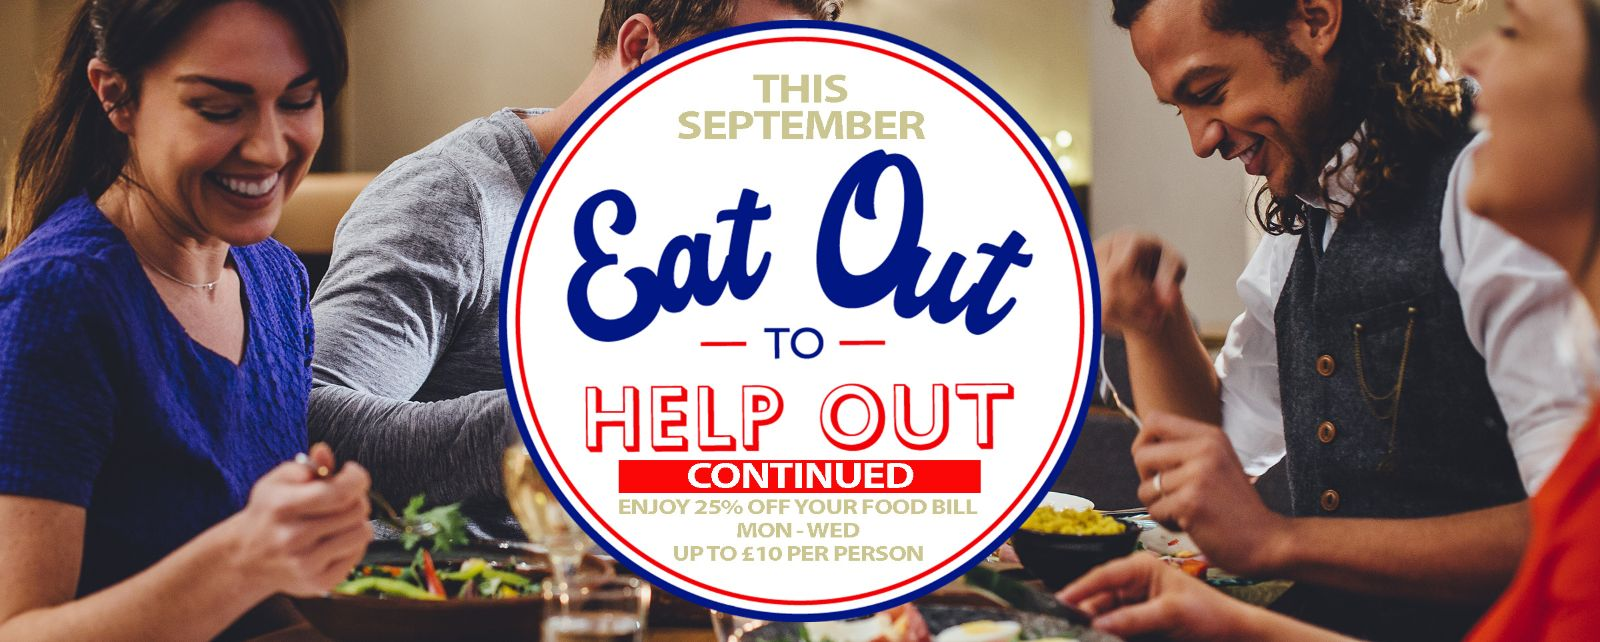 eat out header VERSION 2.jpg